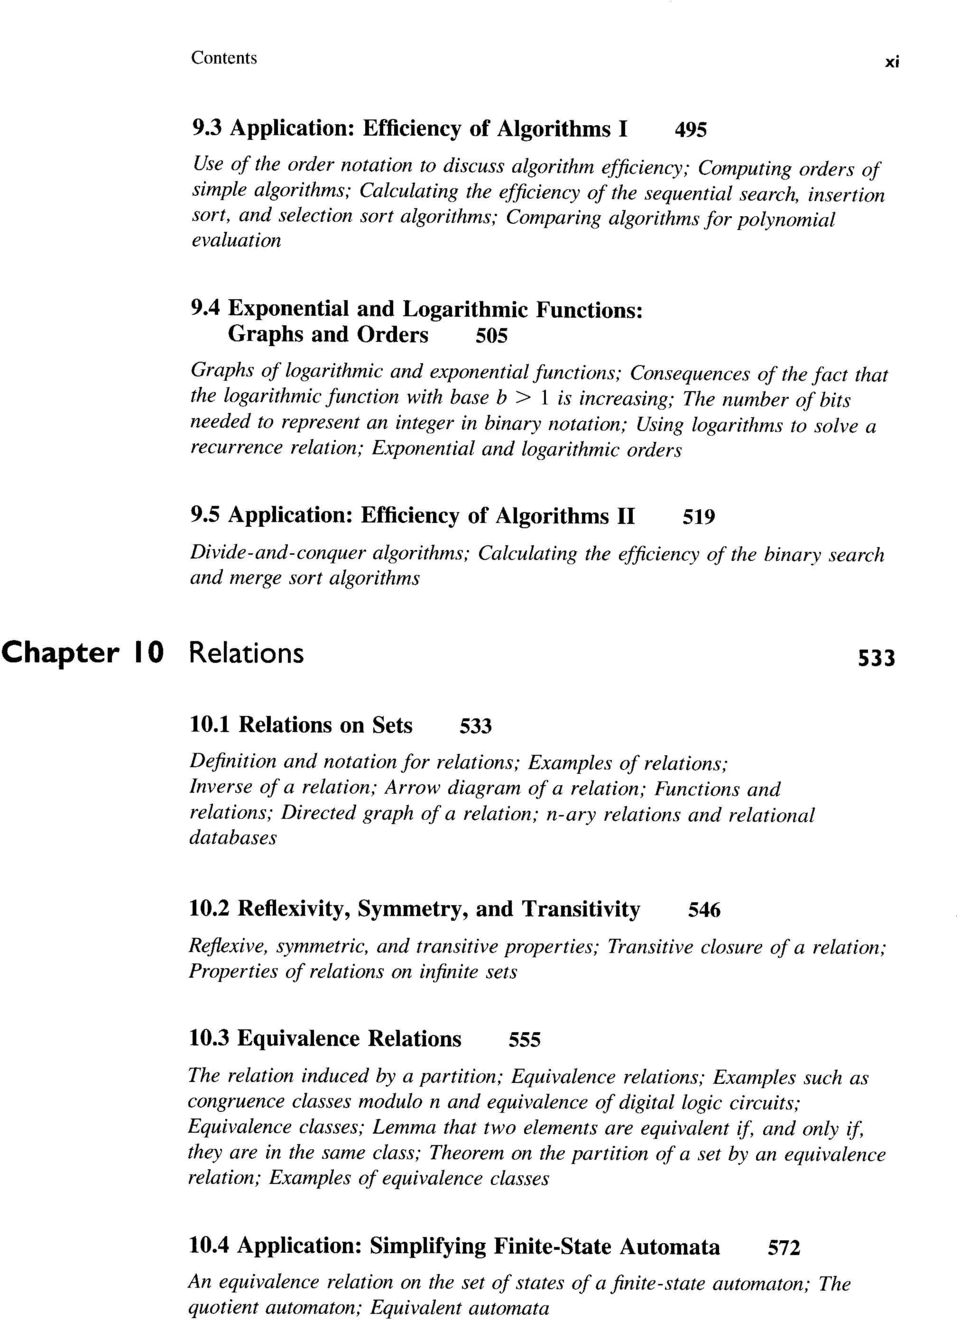 11 Logical Form And Equivalence 1 Pdf Circuit Diagram Notation Insertion Sort Selection Algorithms Comparing For Polynomial Evaluation 9